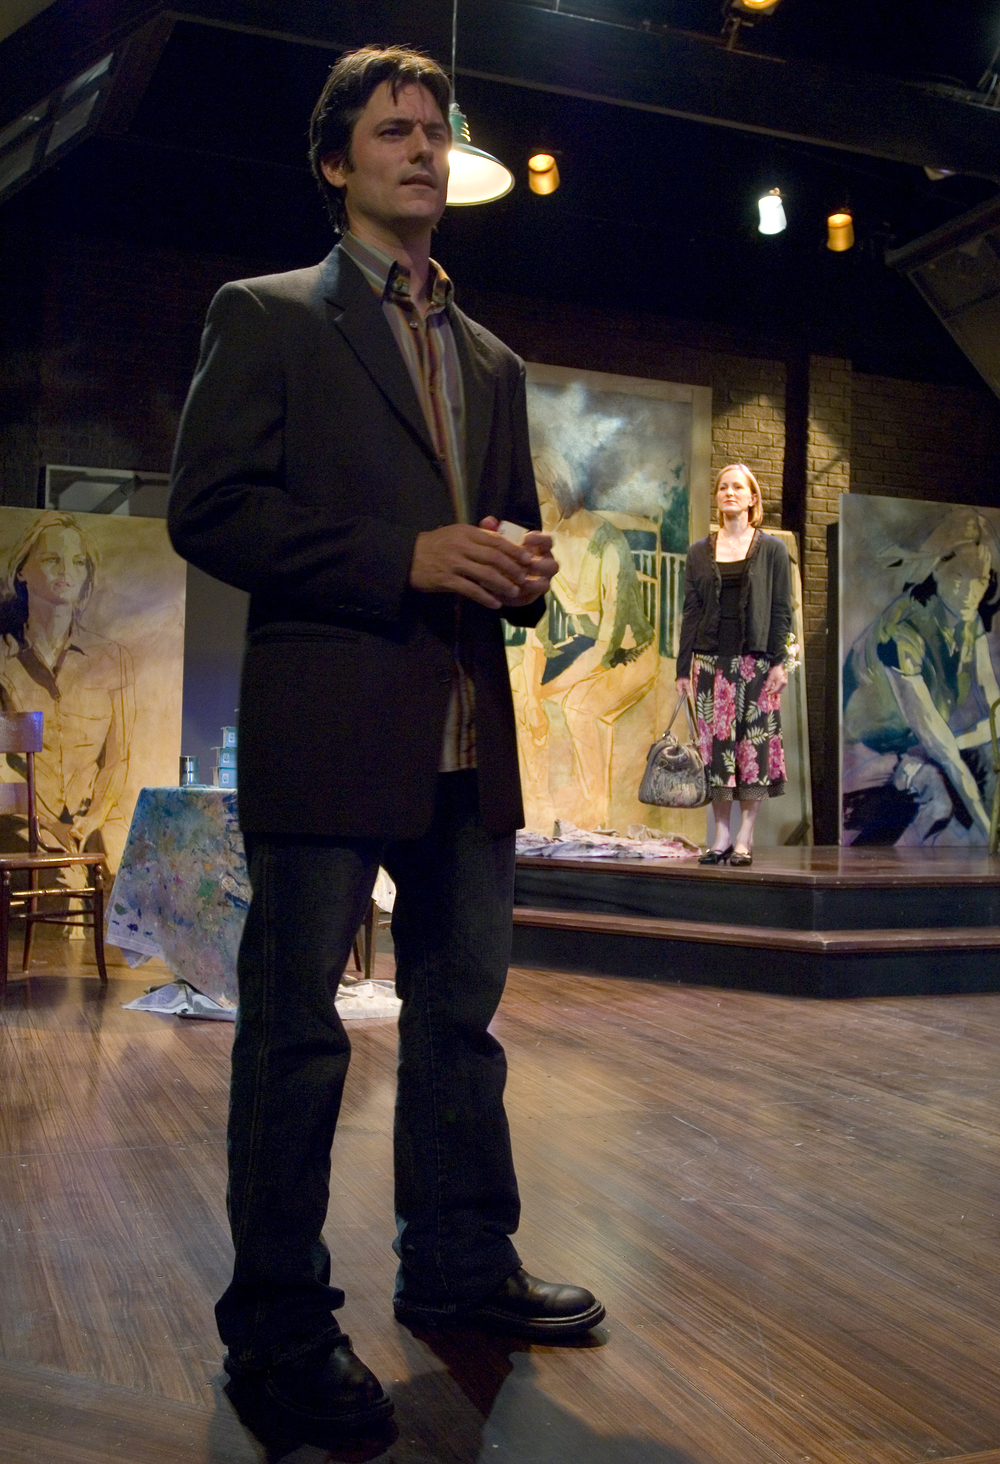 The Colorado Catechism  at Theatre Aspen with Rick Stears and Diana Dresser .  Directed by and written by Vincent J. Cardinal